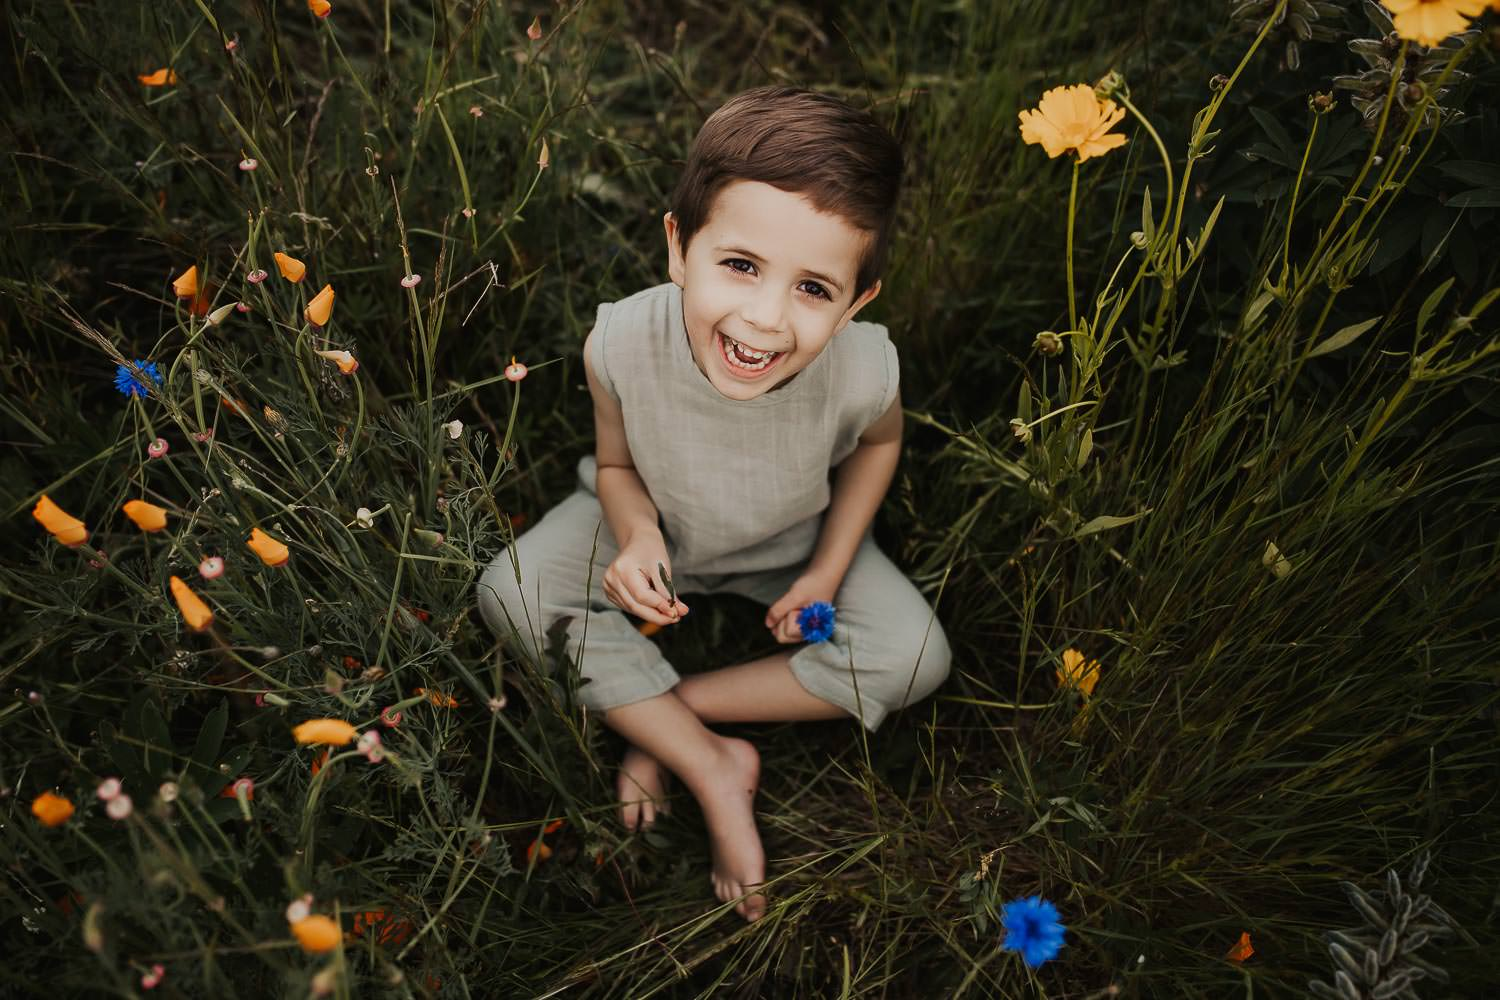 Toddler boy laughing while sitting in flowers